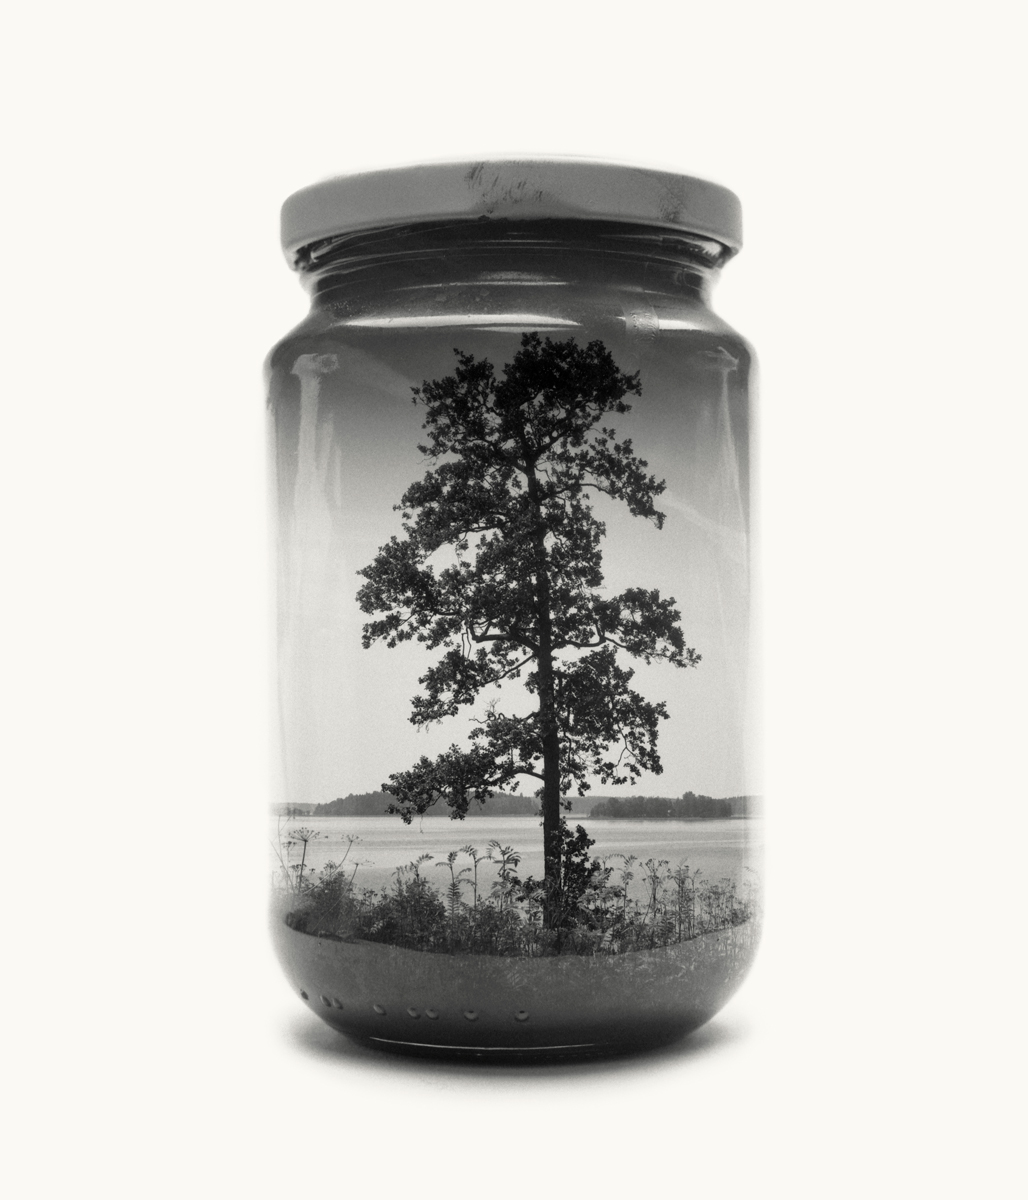 Visual Artwork: Jarred Tree (Medium) by artist and creator Christoffer Relander